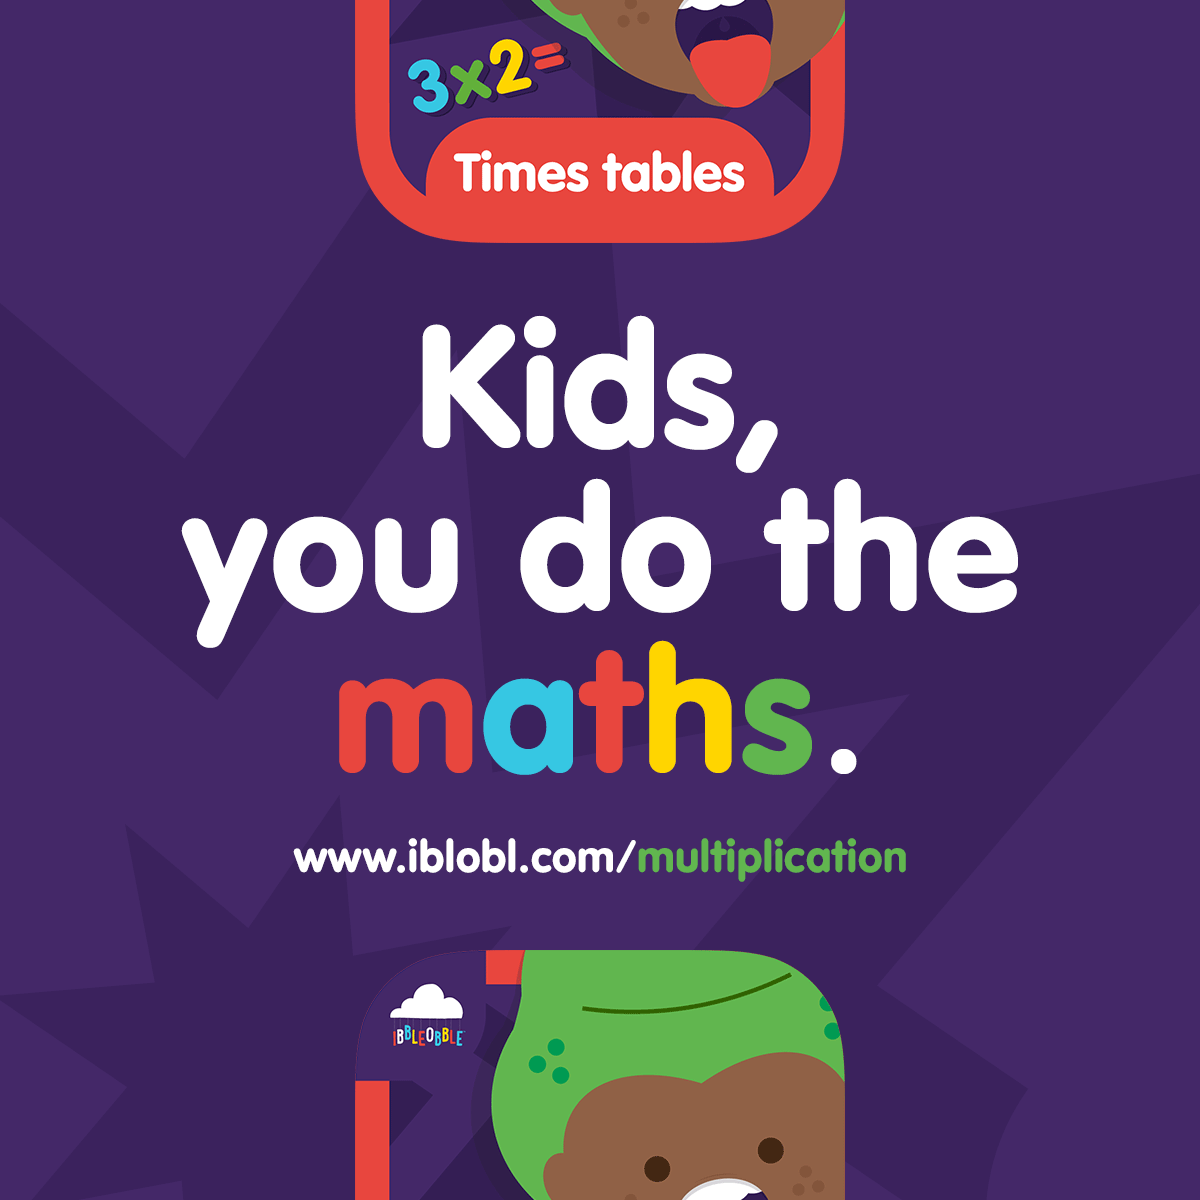 #Practice #multiplication the boring way or the FUN way... #kids, you do the #maths!  http://buff.ly/2Kej3F5    #TimesTables #Math #Mathematics #primary #primarySchool #school #fridaymorning #FridayFeeling #FridayMotivation #FriYAYpic.twitter.com/4HFVmR7L6M